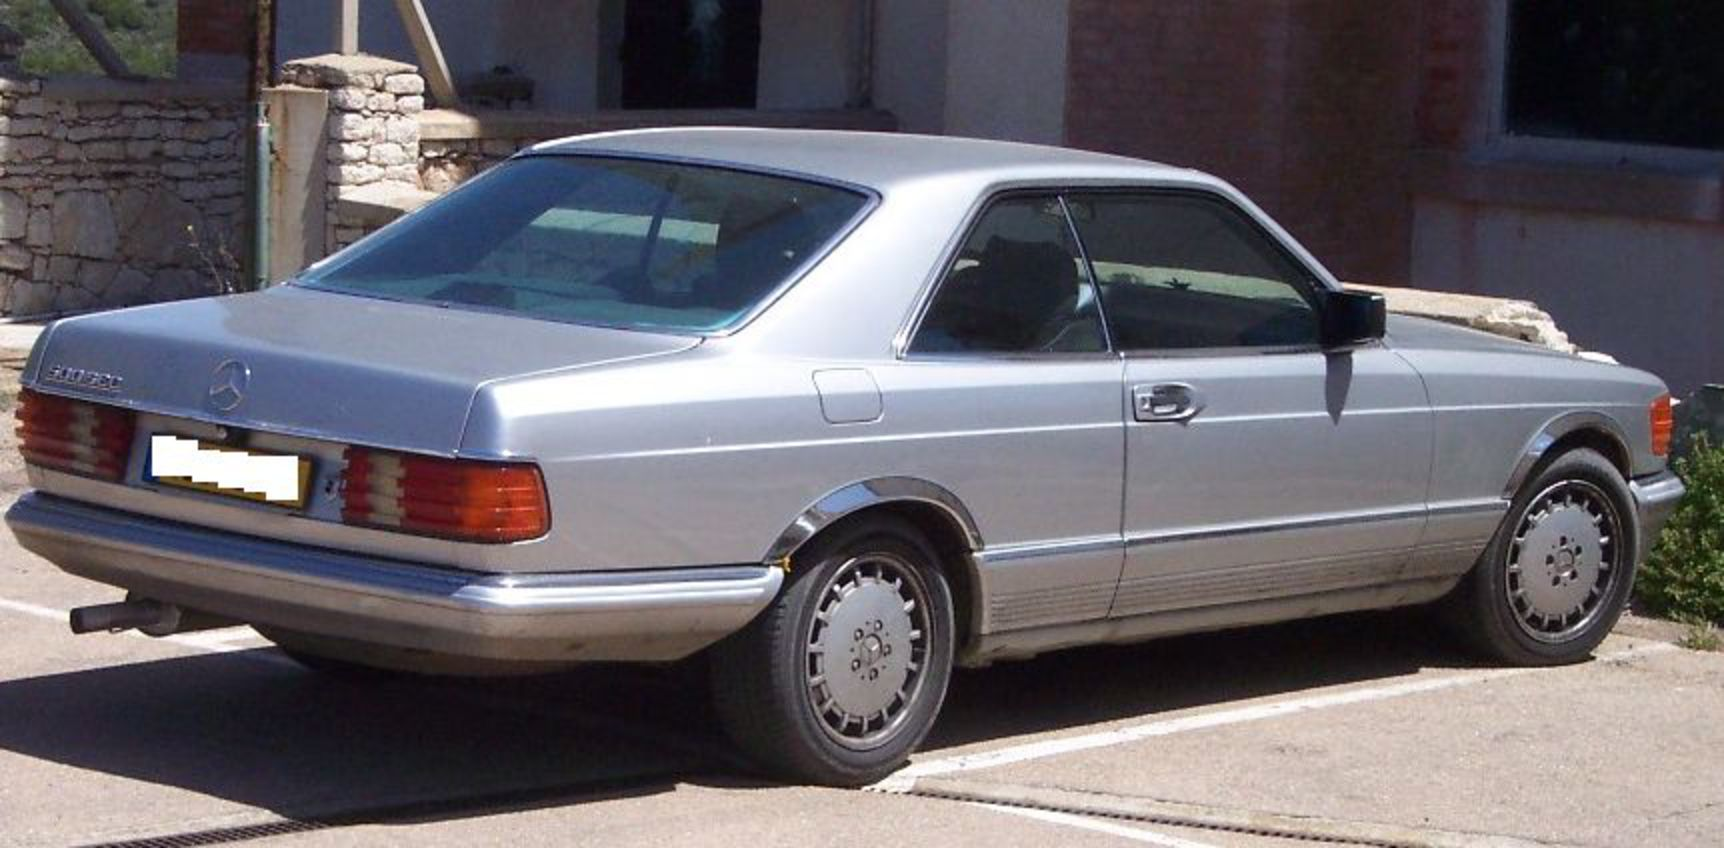 File:Mercedes Benz 500 SEC silver hr.jpg